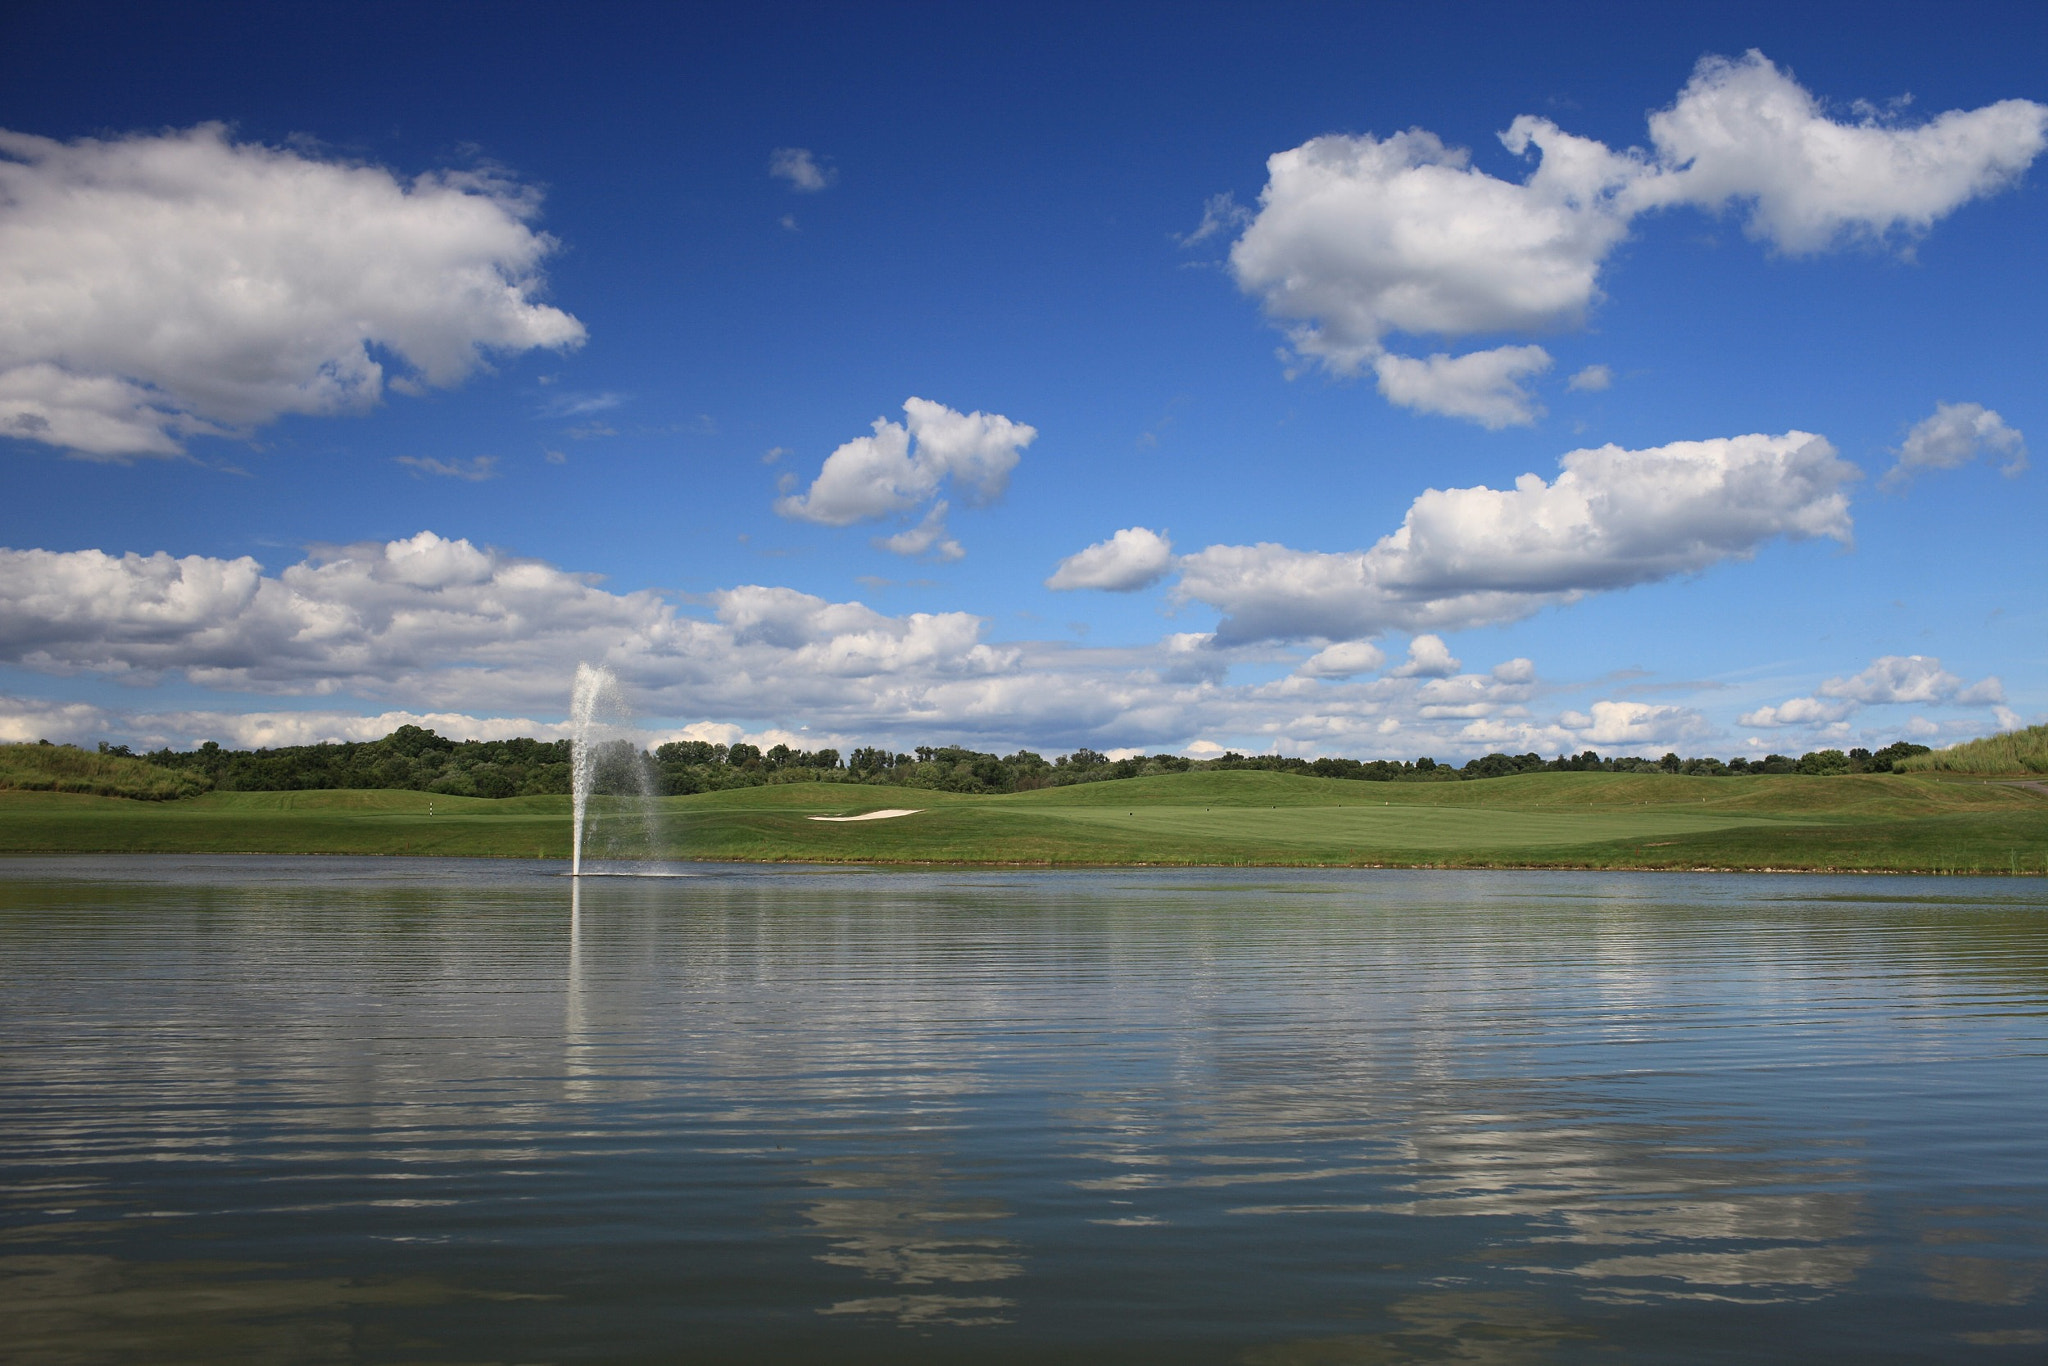 Photograph Sunny day at the golf course by Drew Smith on 500px